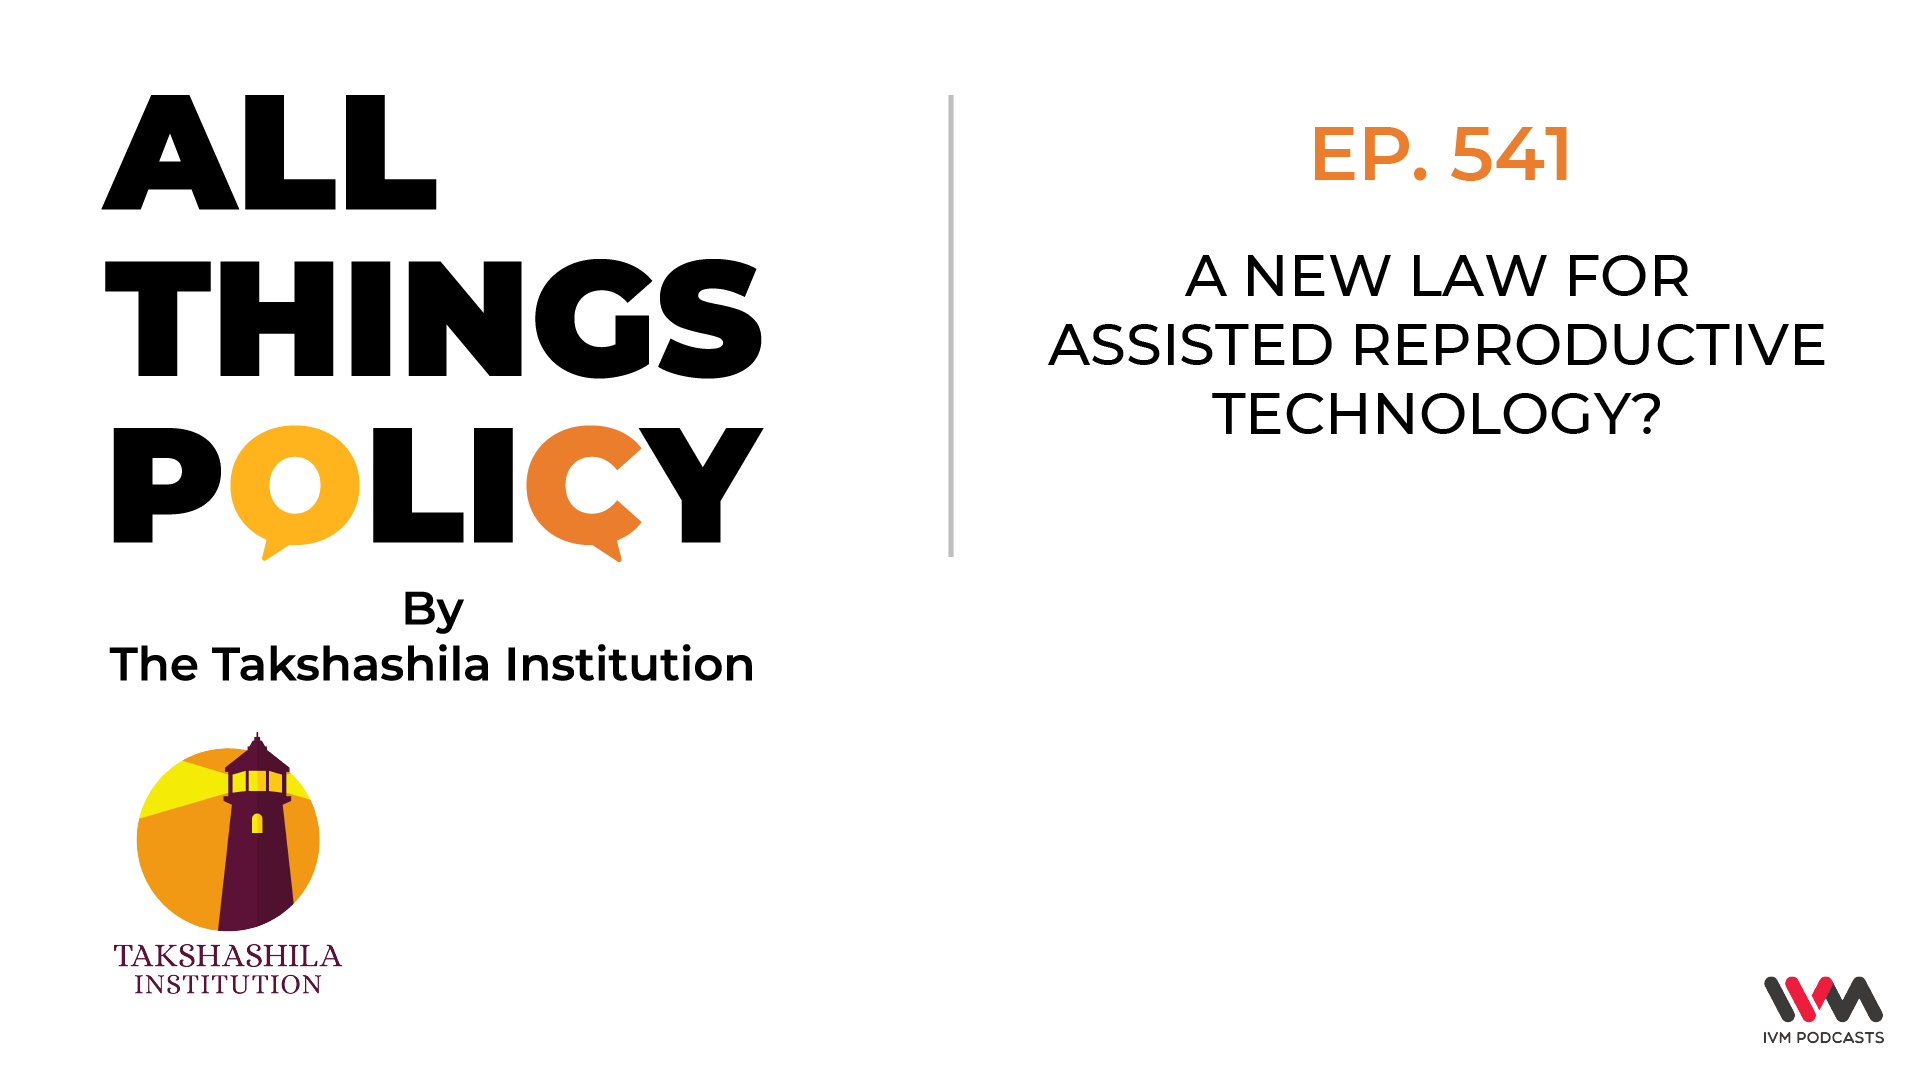 Ep. 541: A New Law for Assisted Reproductive Technology?